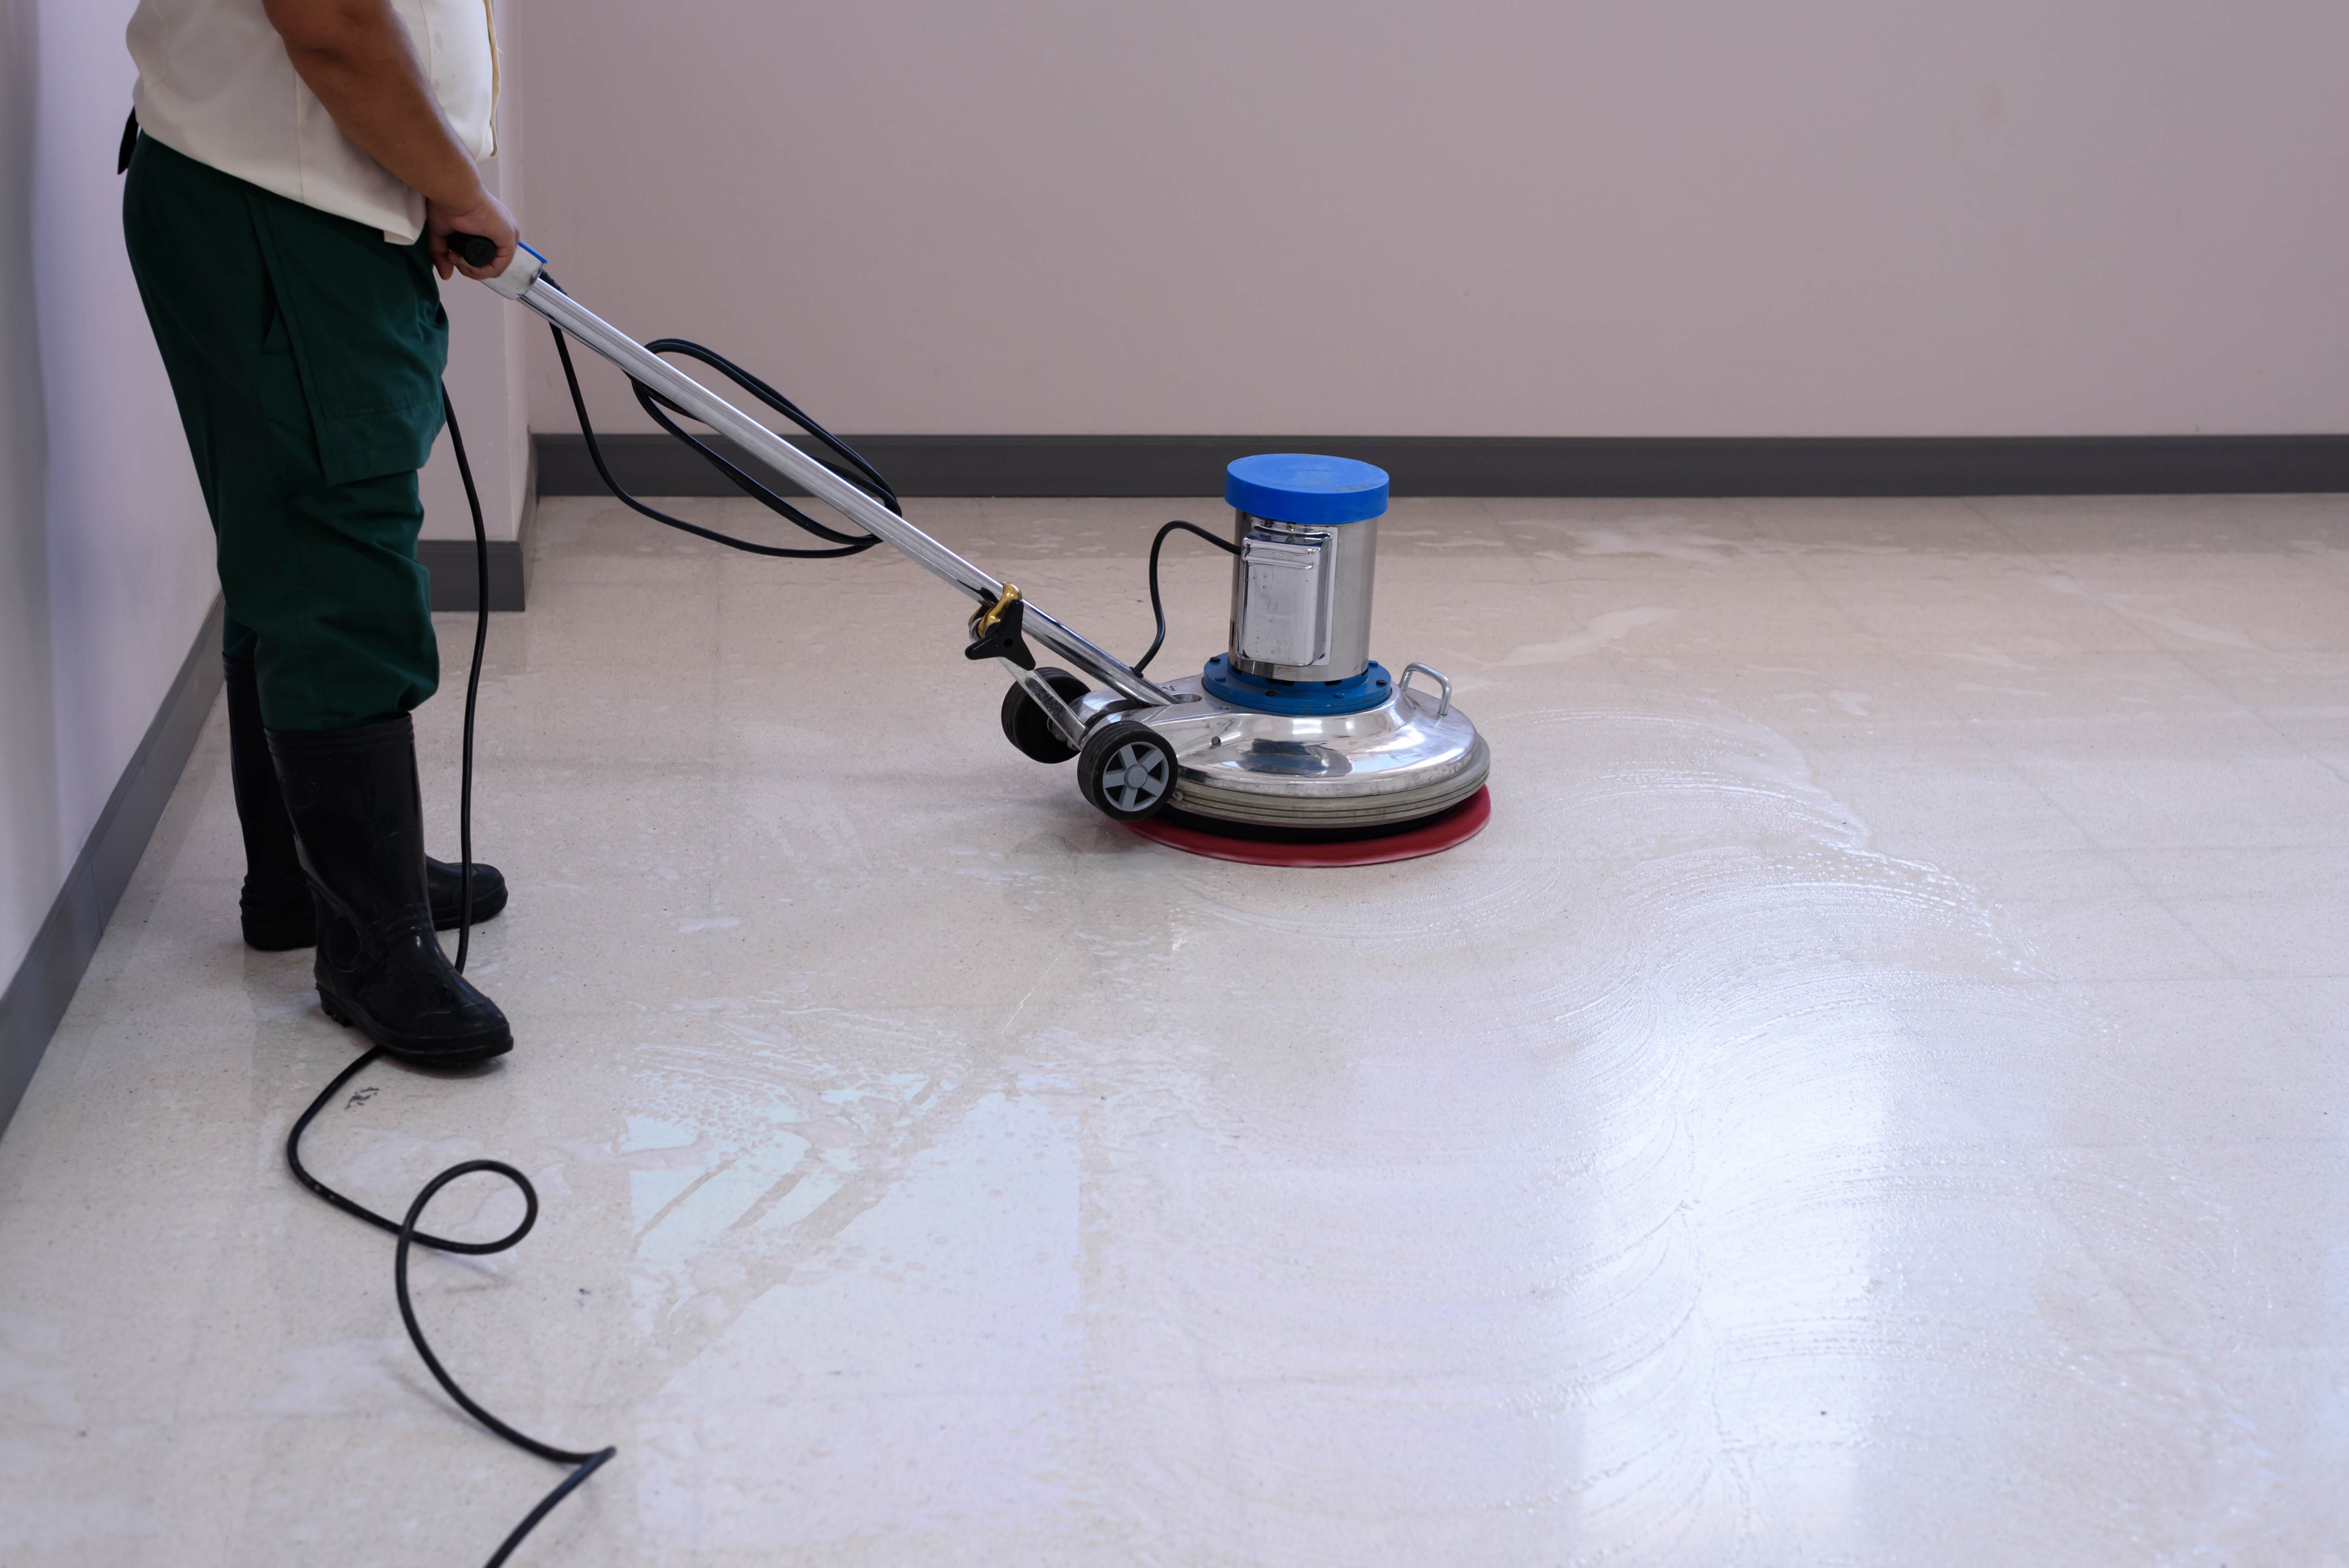 Woman maid cleaning floor with machine c